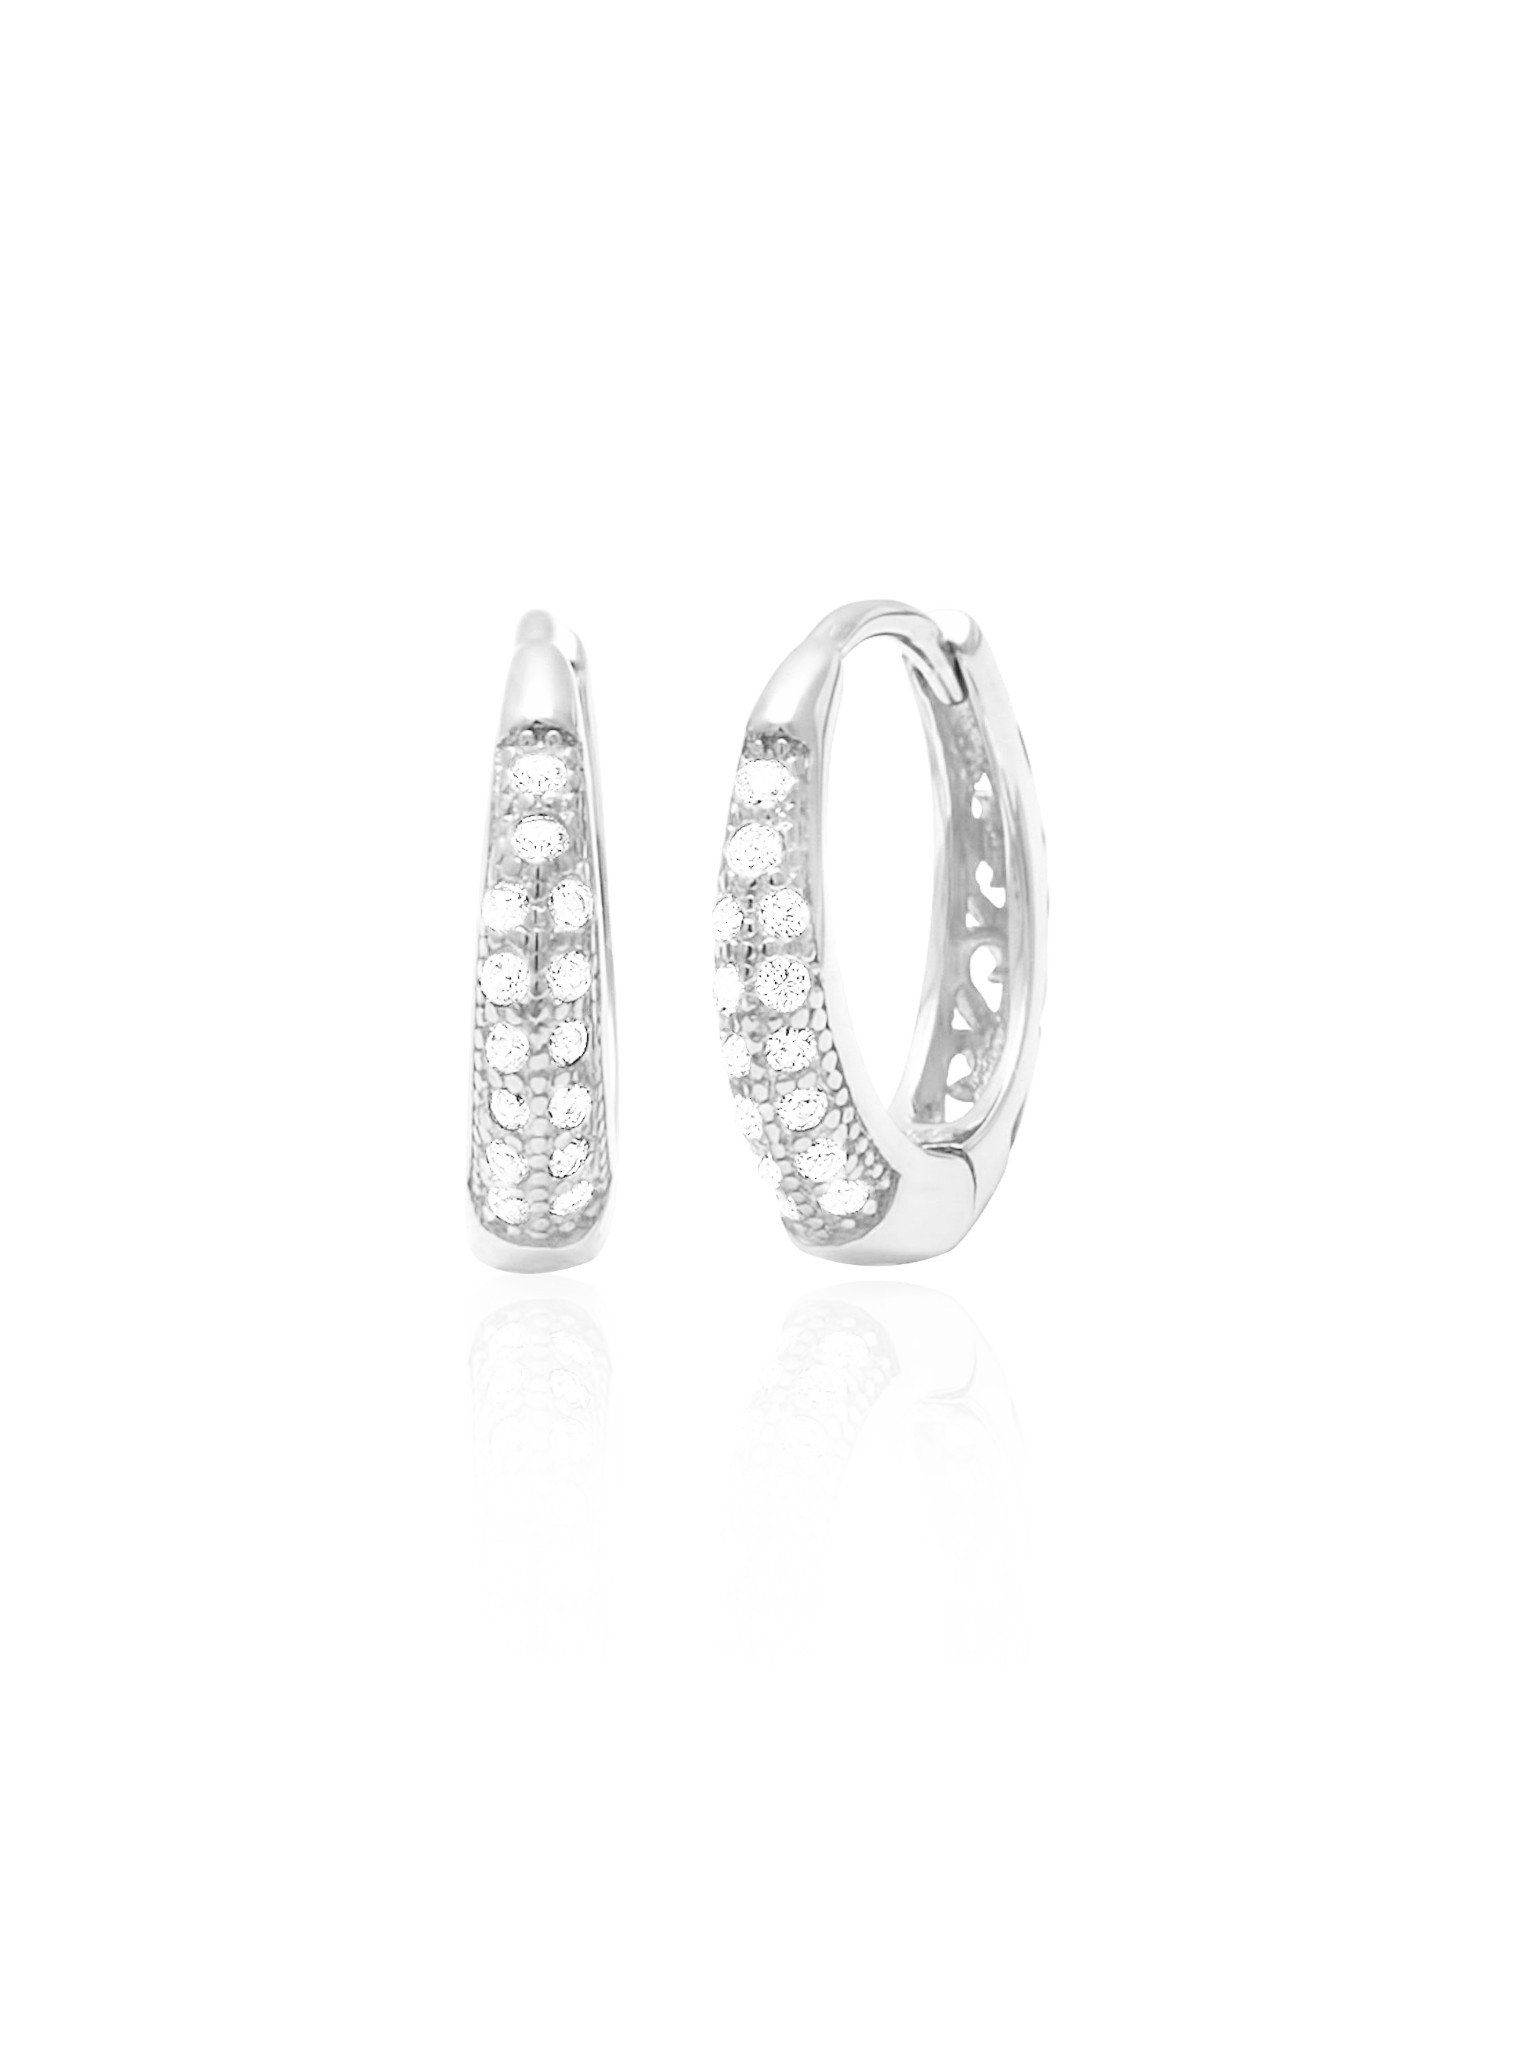 Gigi CZ Huggie Hoop Earrings in Sterling Silver